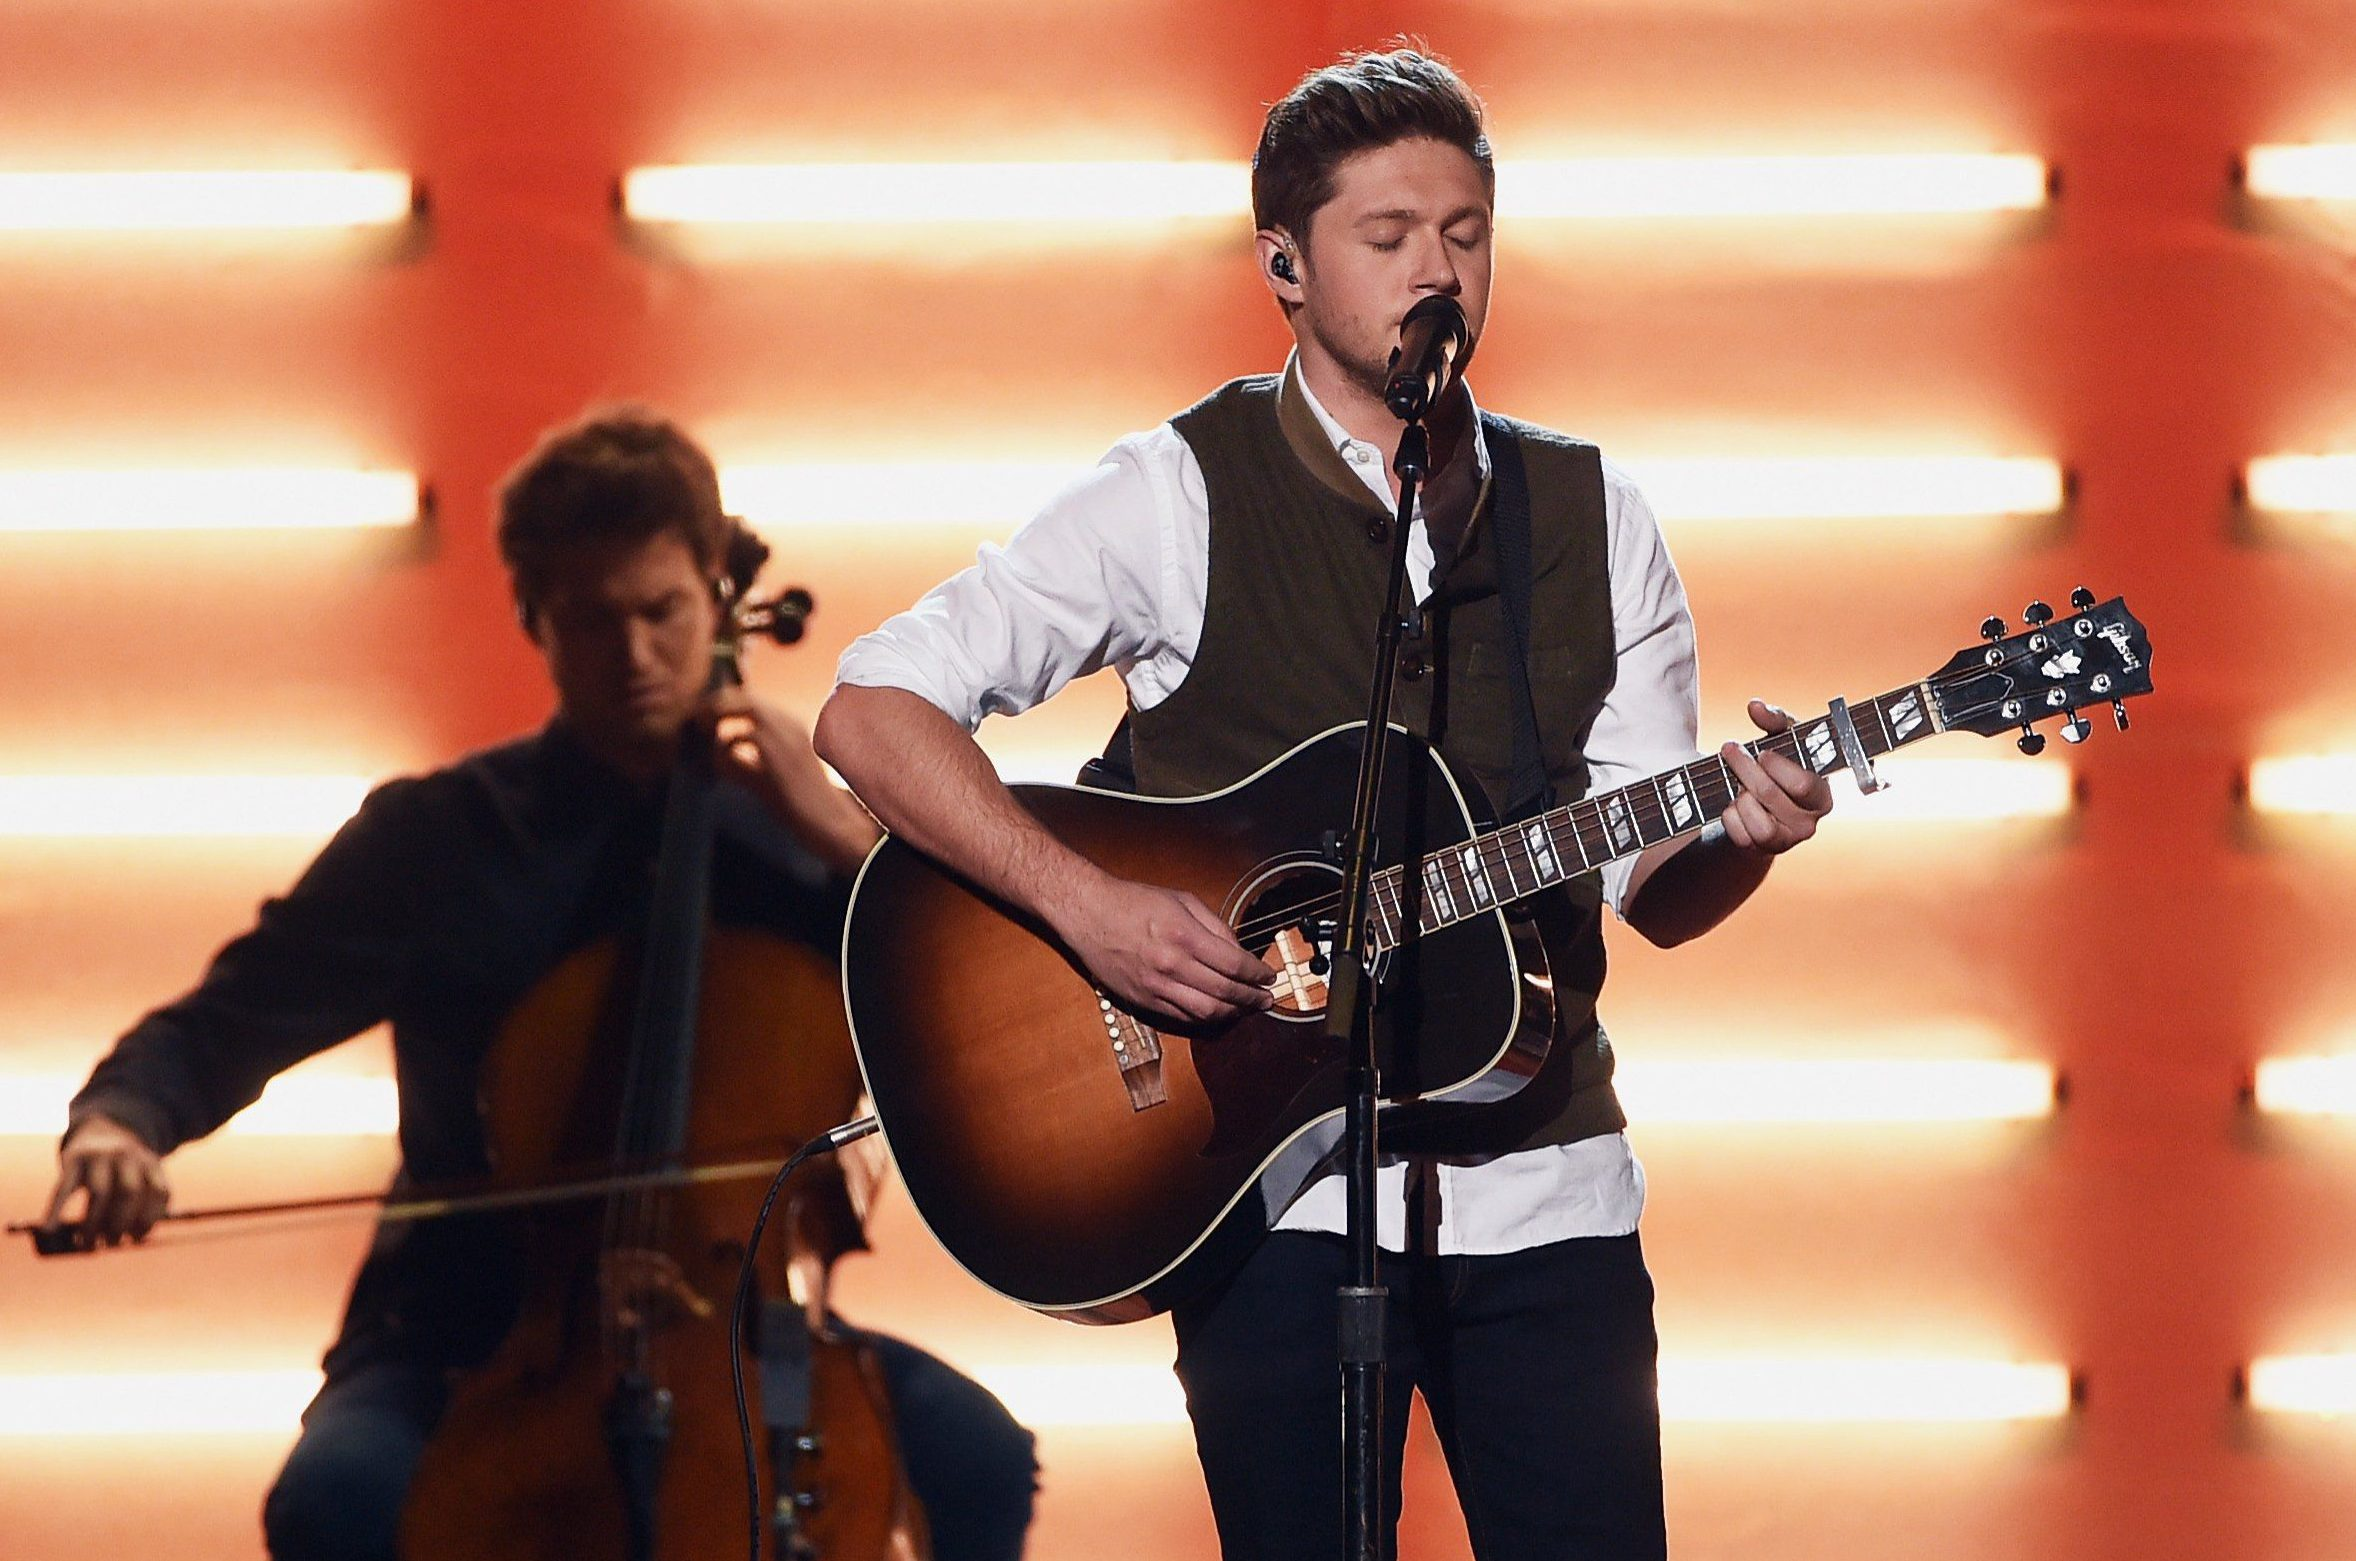 Niall Horan teases fans over new video for This Town, fans lose it in suitable fashion